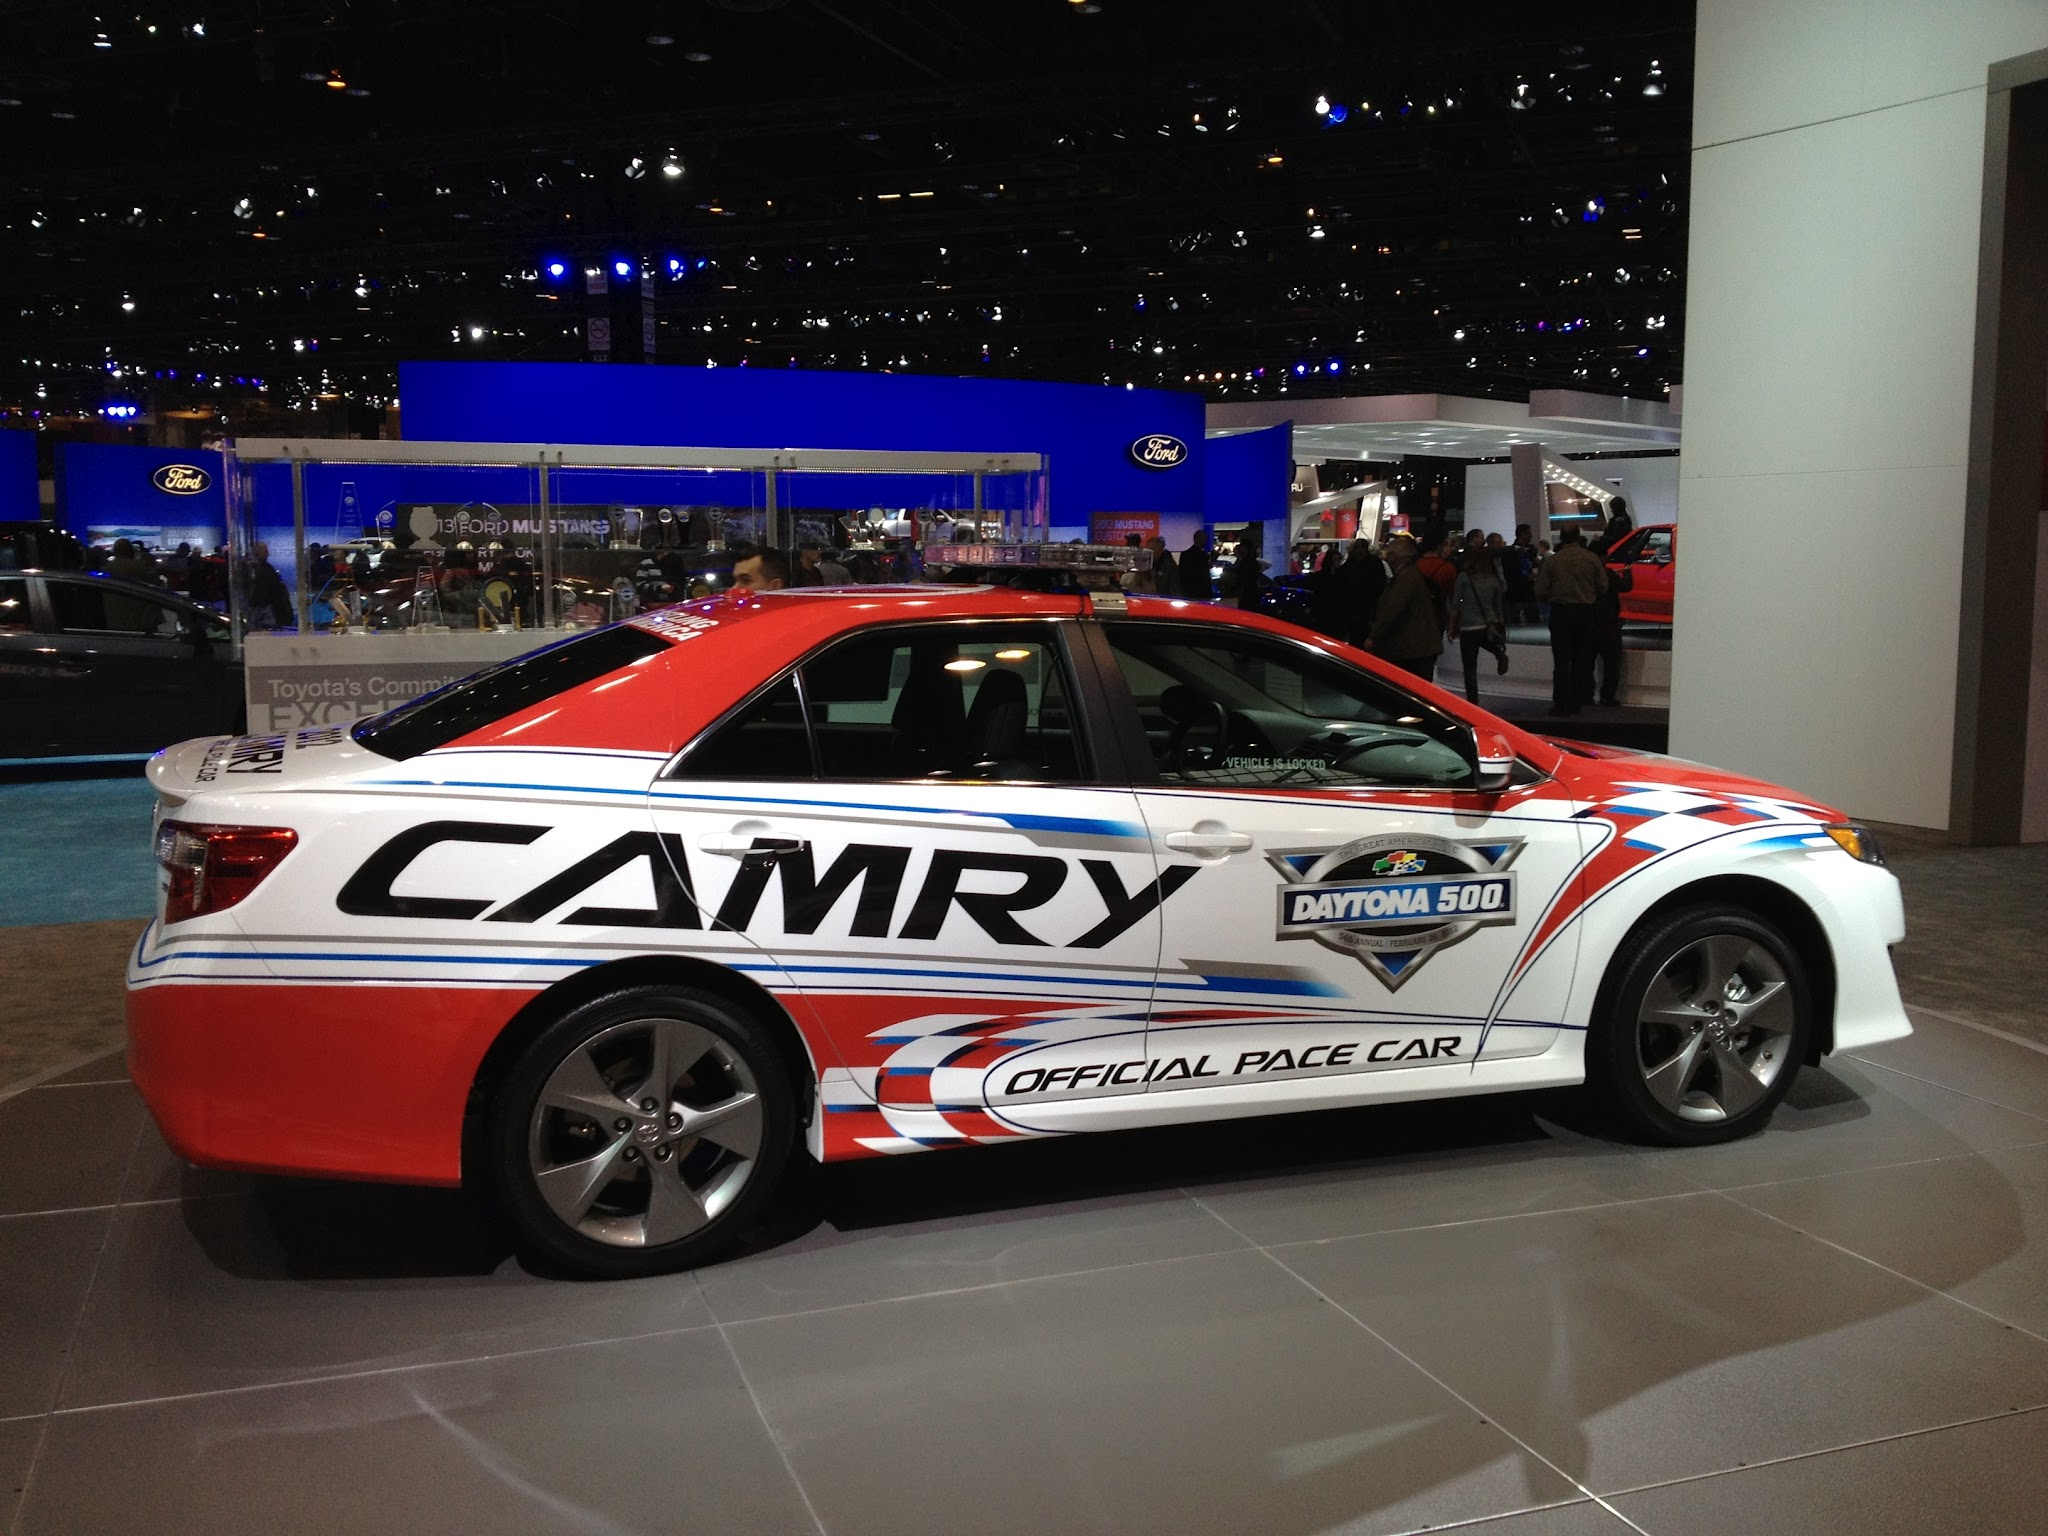 Photo: In just a few weeks this Camry pace car will be leading the way at the 2012 Daytona 500.